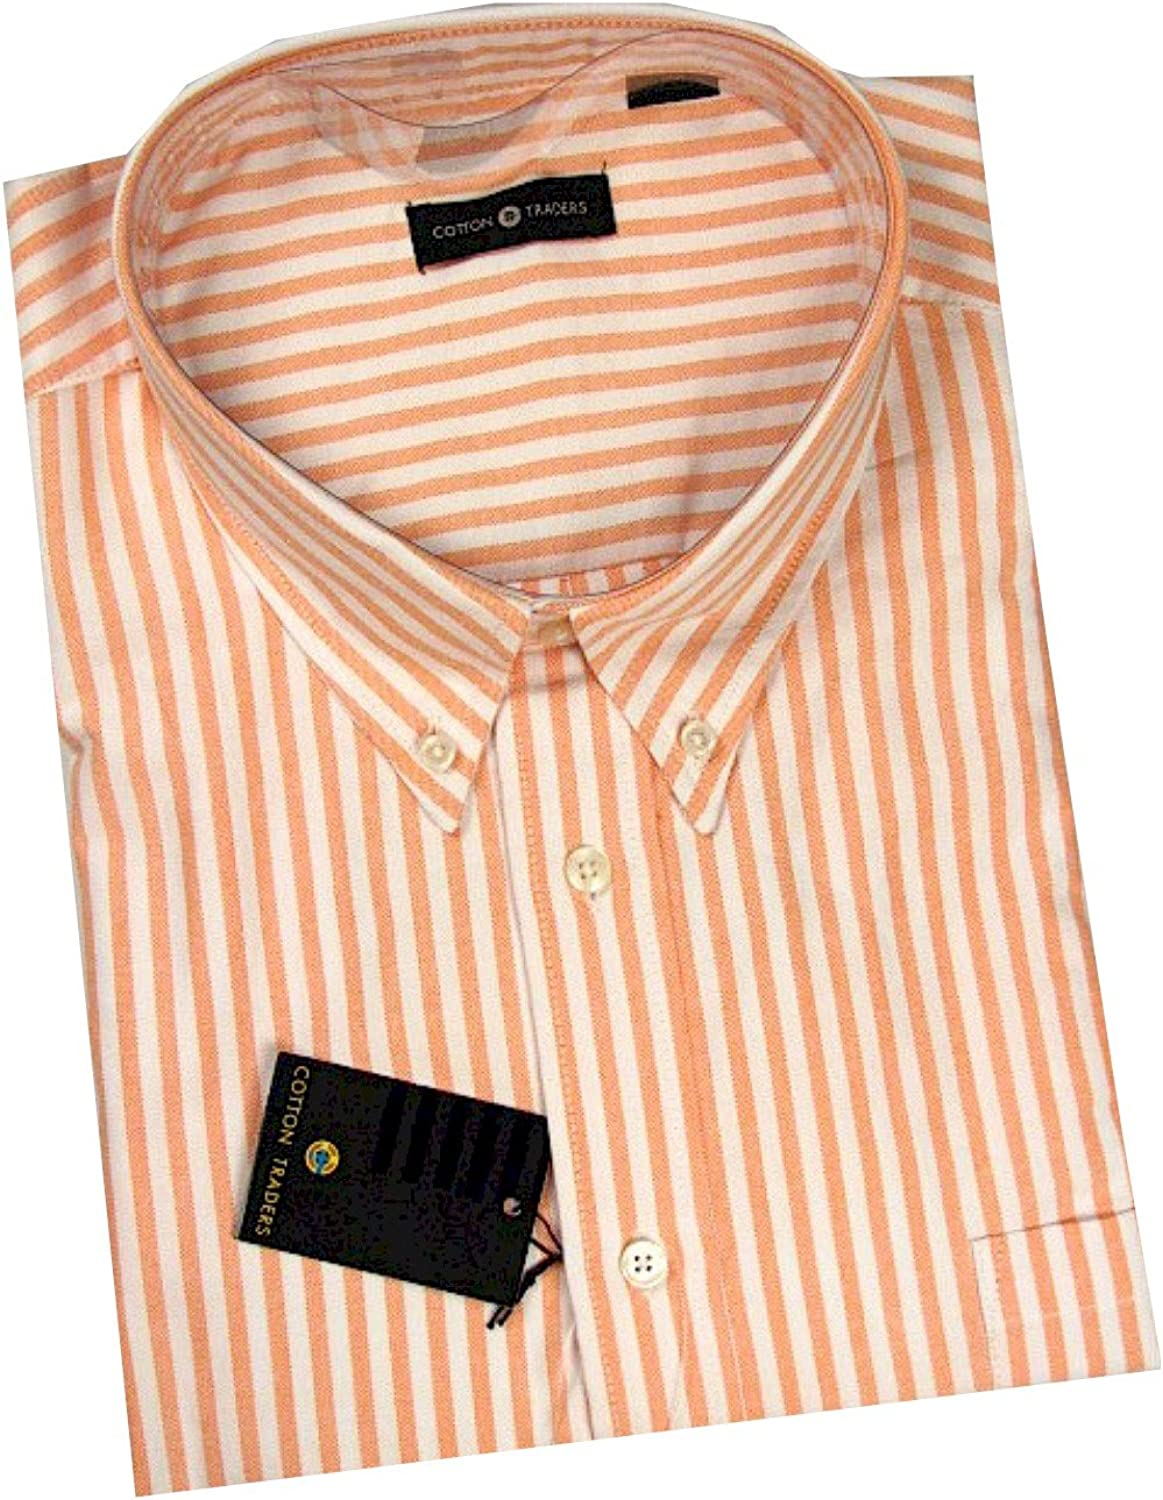 Cotton Traders Big and Tall All Cotton Short Sleeve Oxford Shirt